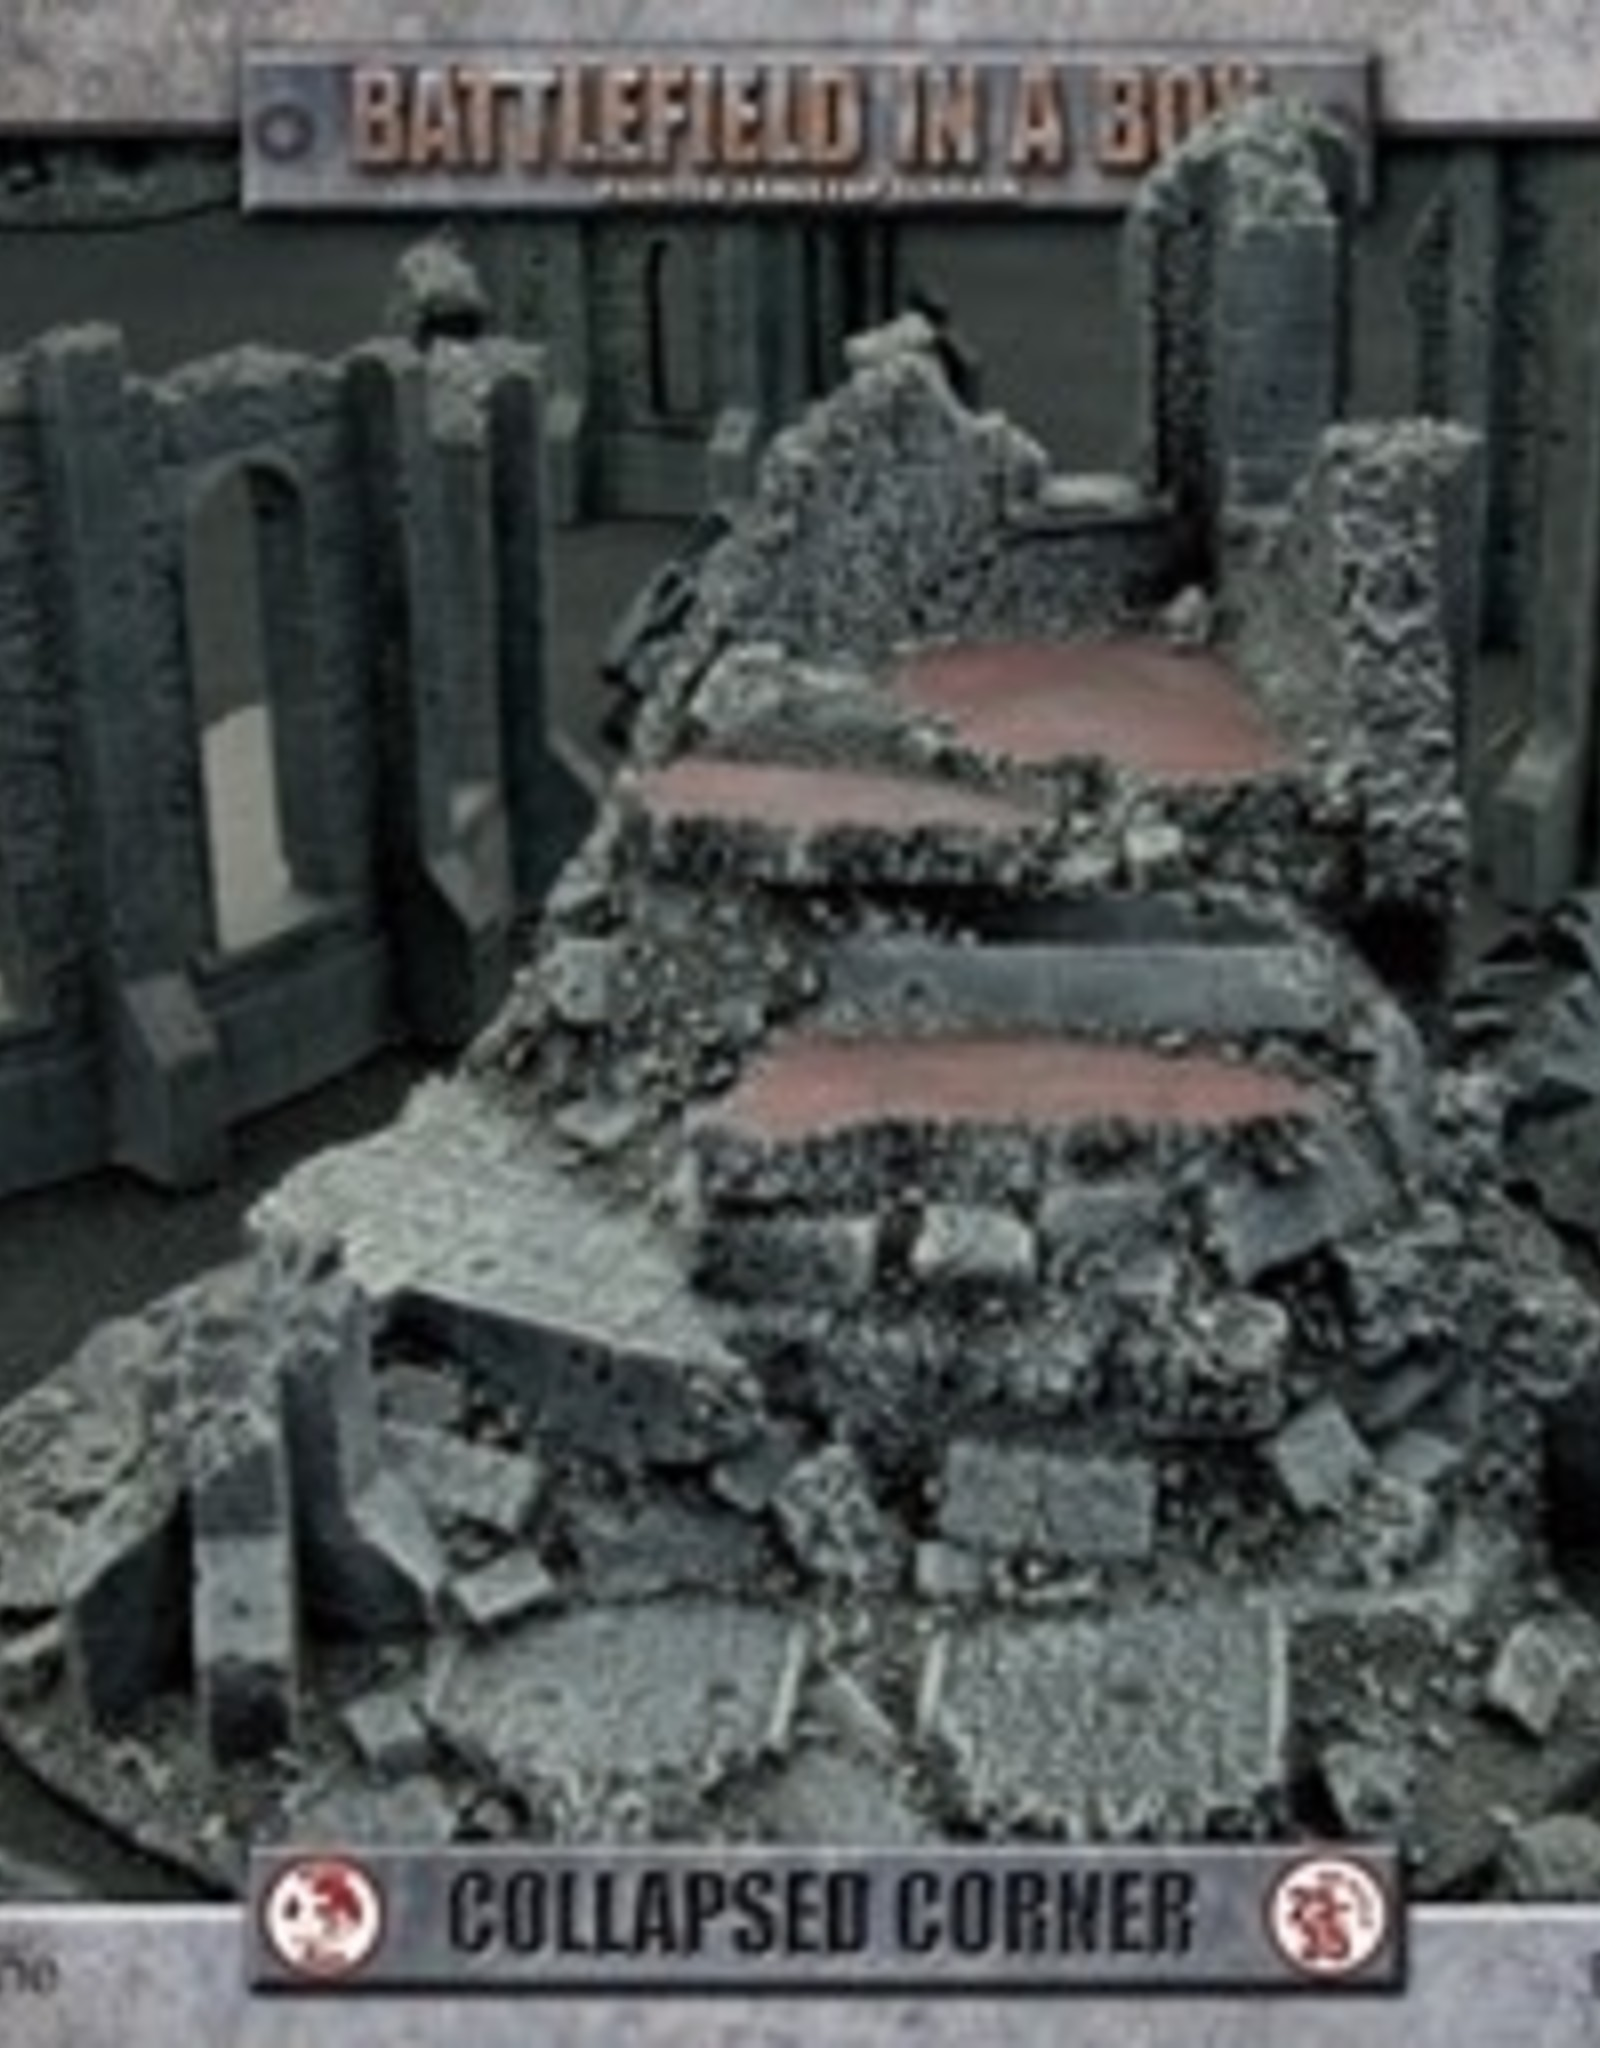 Battlefront Miniatures Battlefield in a Box: Collapsed Corner